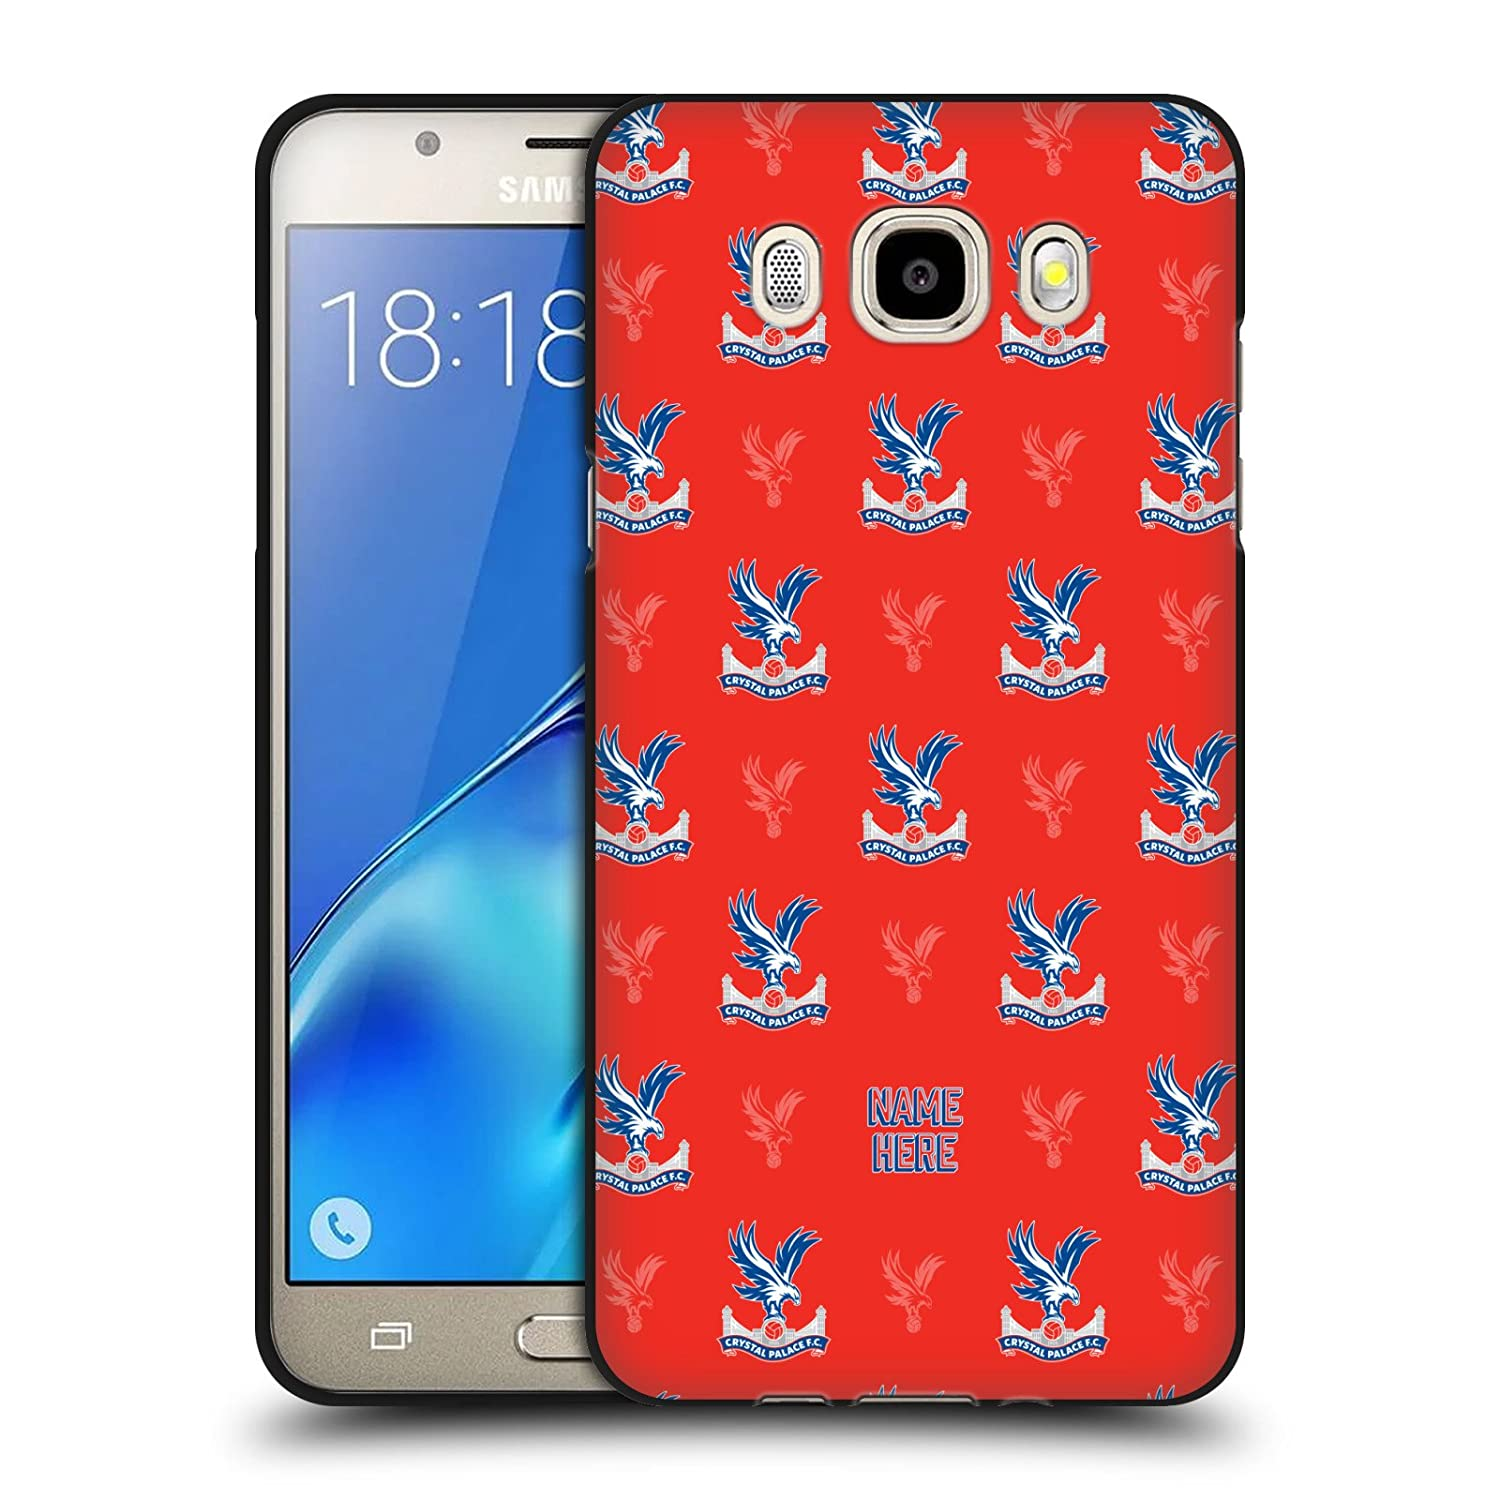 Amazon.com: Custom Customized Personalized Crystal Palace FC Black Eagle 2017/18 Black Soft Gel Case for Samsung Galaxy J5 (2016): Cell Phones & Accessories